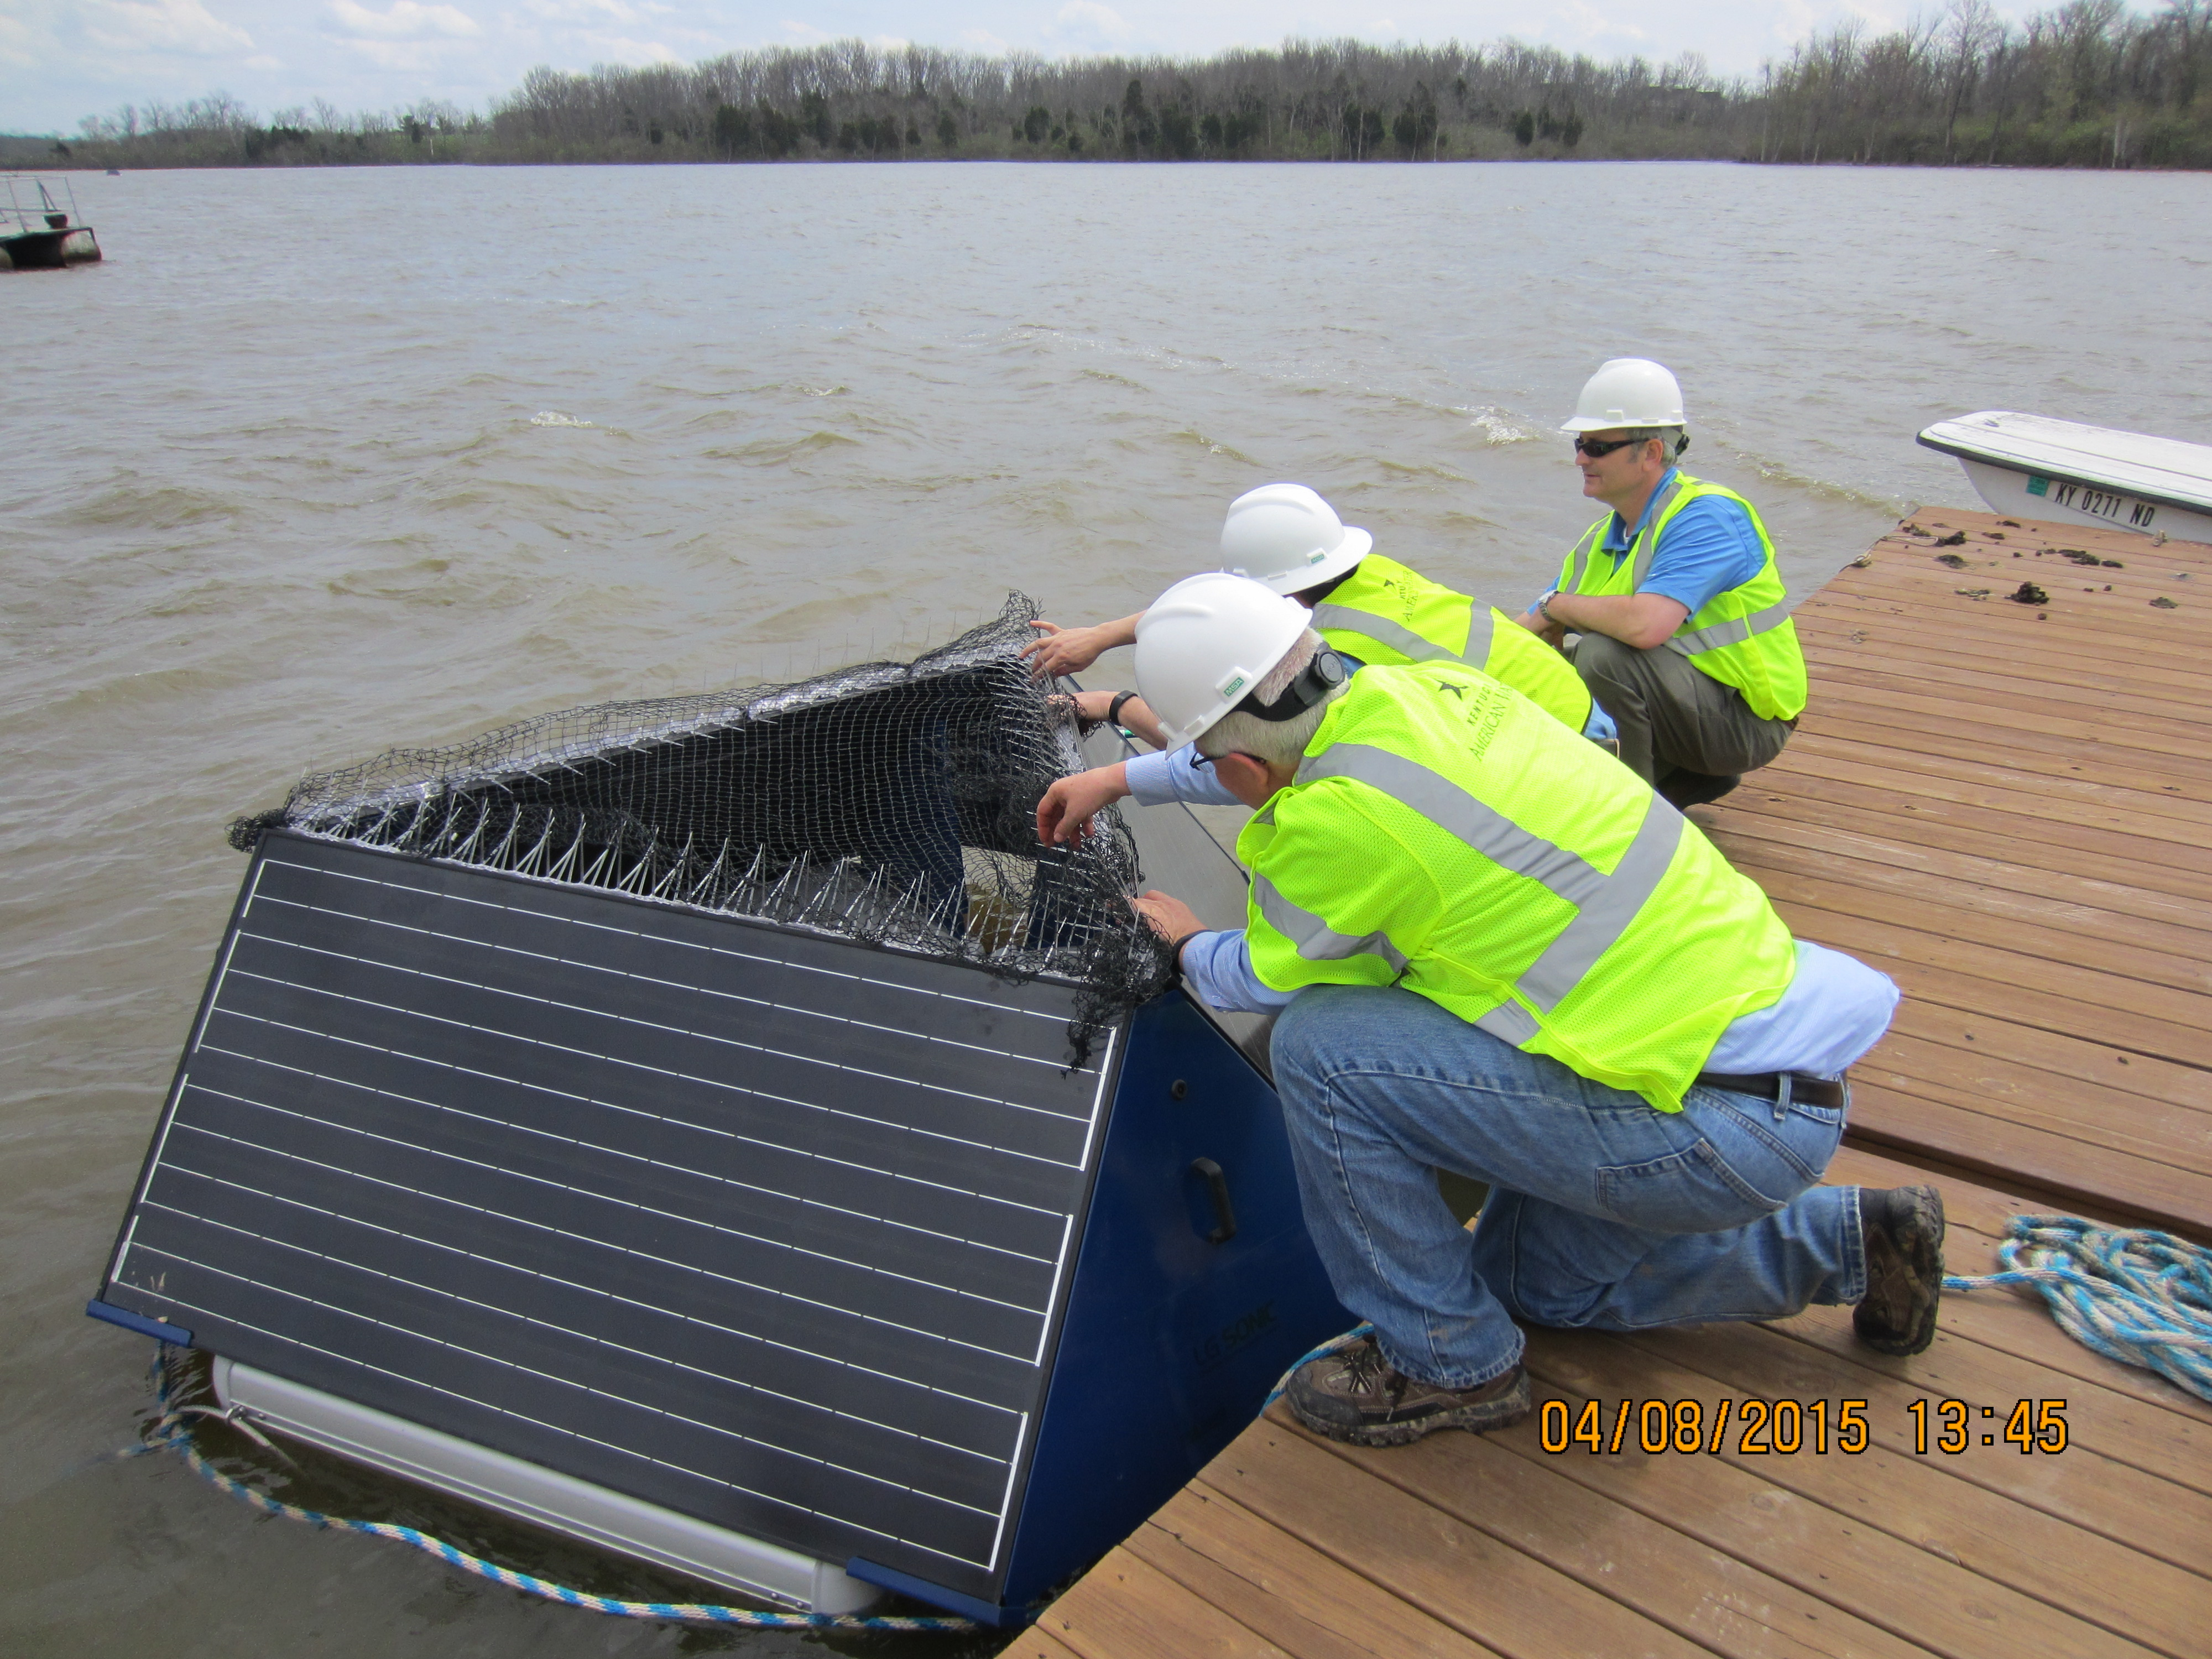 Greening up the Reservoir: New Solar-powered sonic units